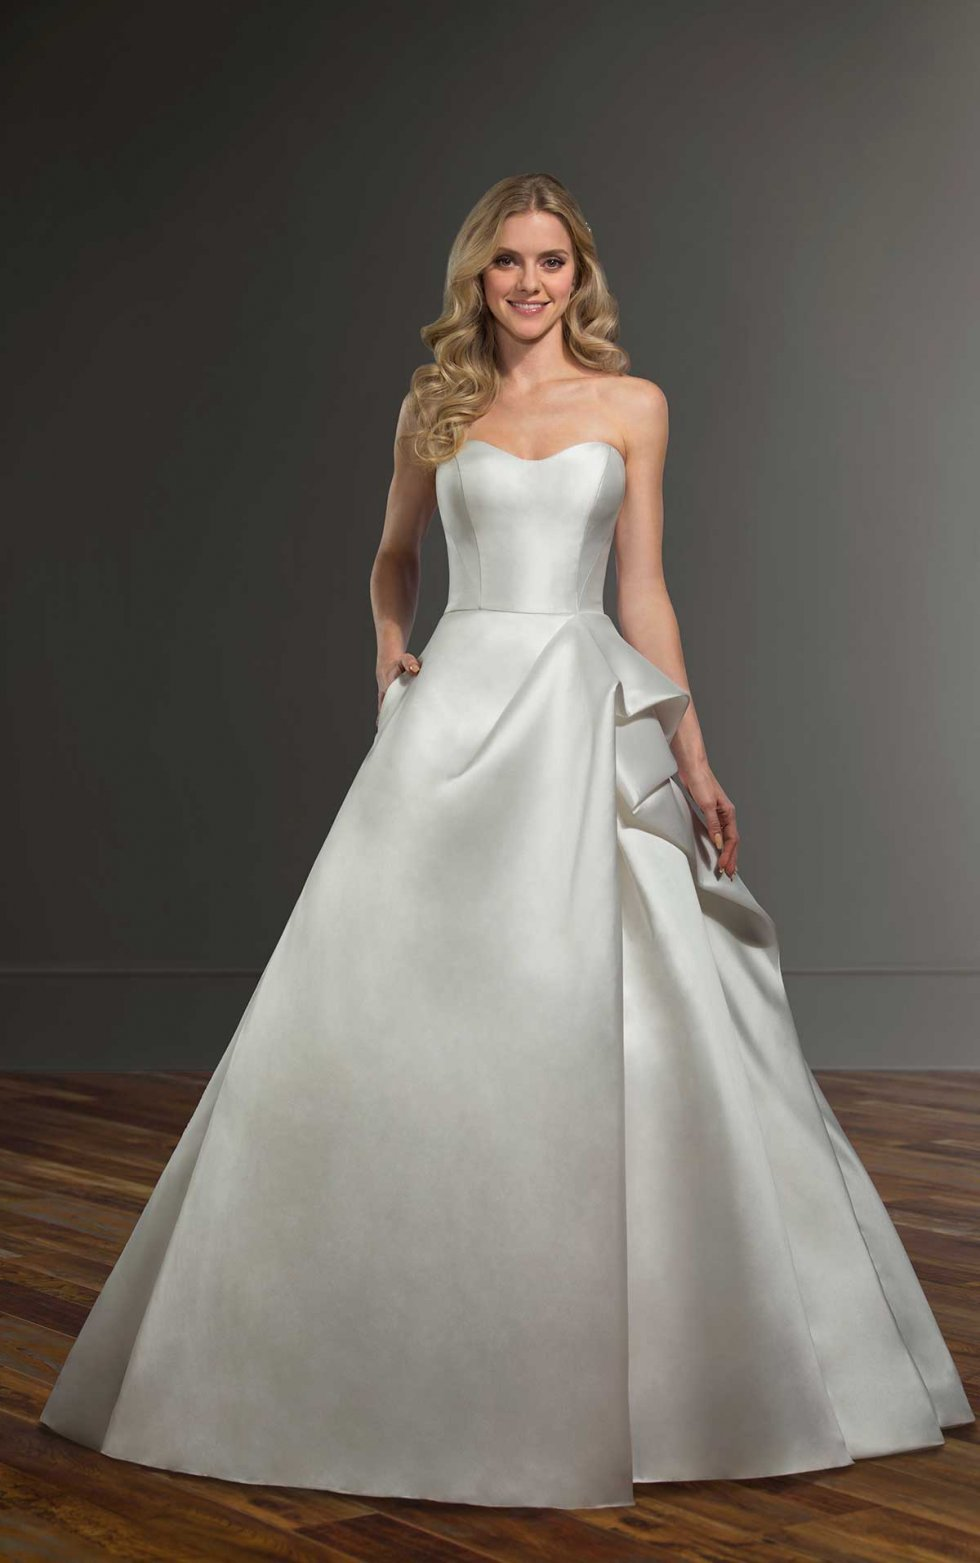 Martina Liana - #1027 (US Size 6) **NEVER WORN, UNALTERED, NEW WITH TAGS**  size 10 - $1950 - (35% OFF)